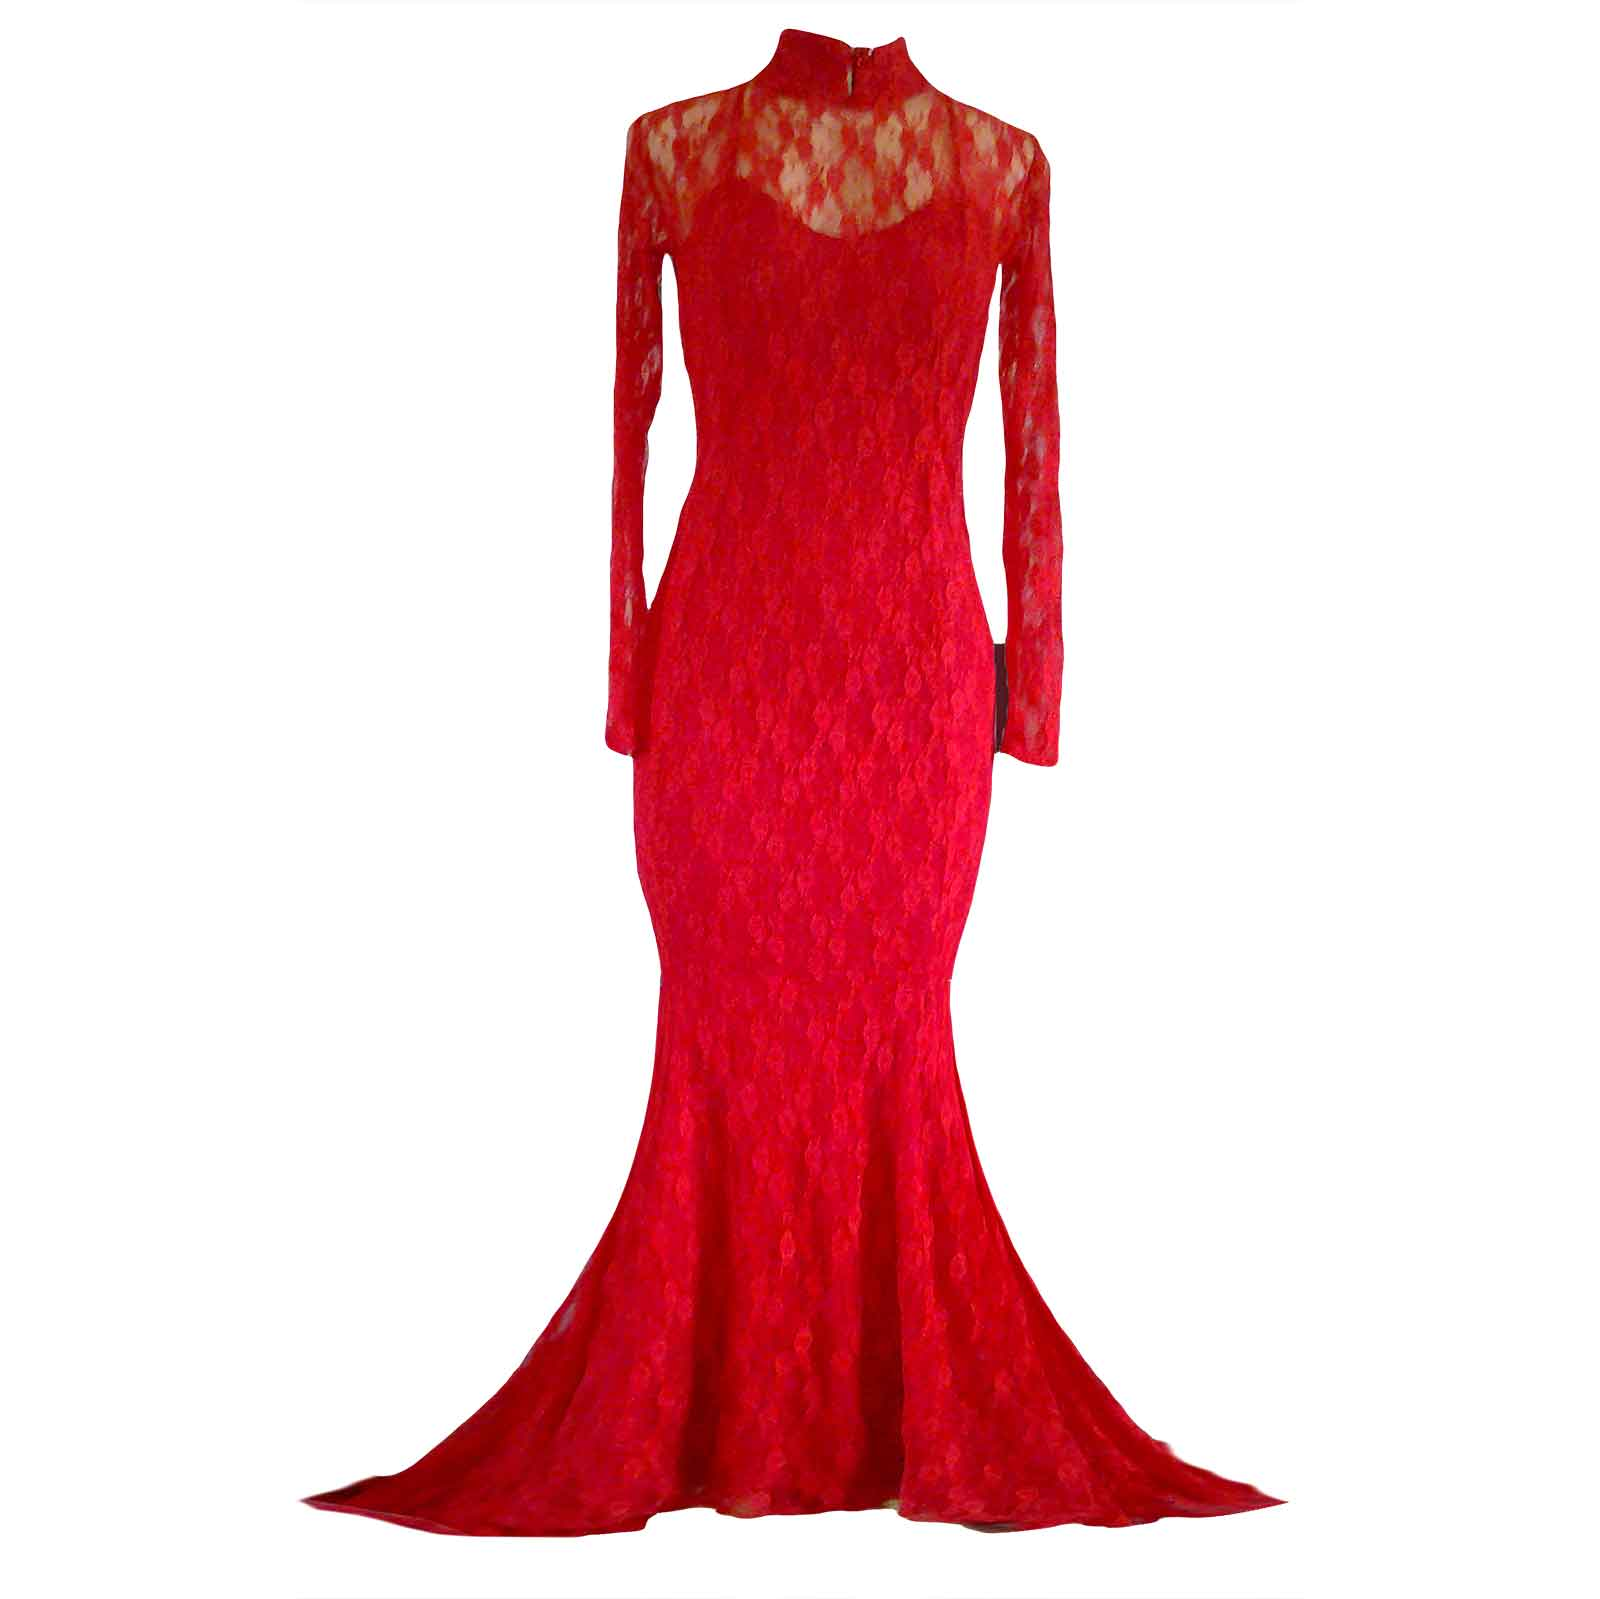 Red fully lace soft mermaid evening dress 3 red fully lace soft mermaid evening dress for a party, with a choker neckline, long sheer sleeves, low back with lace over it and a train.